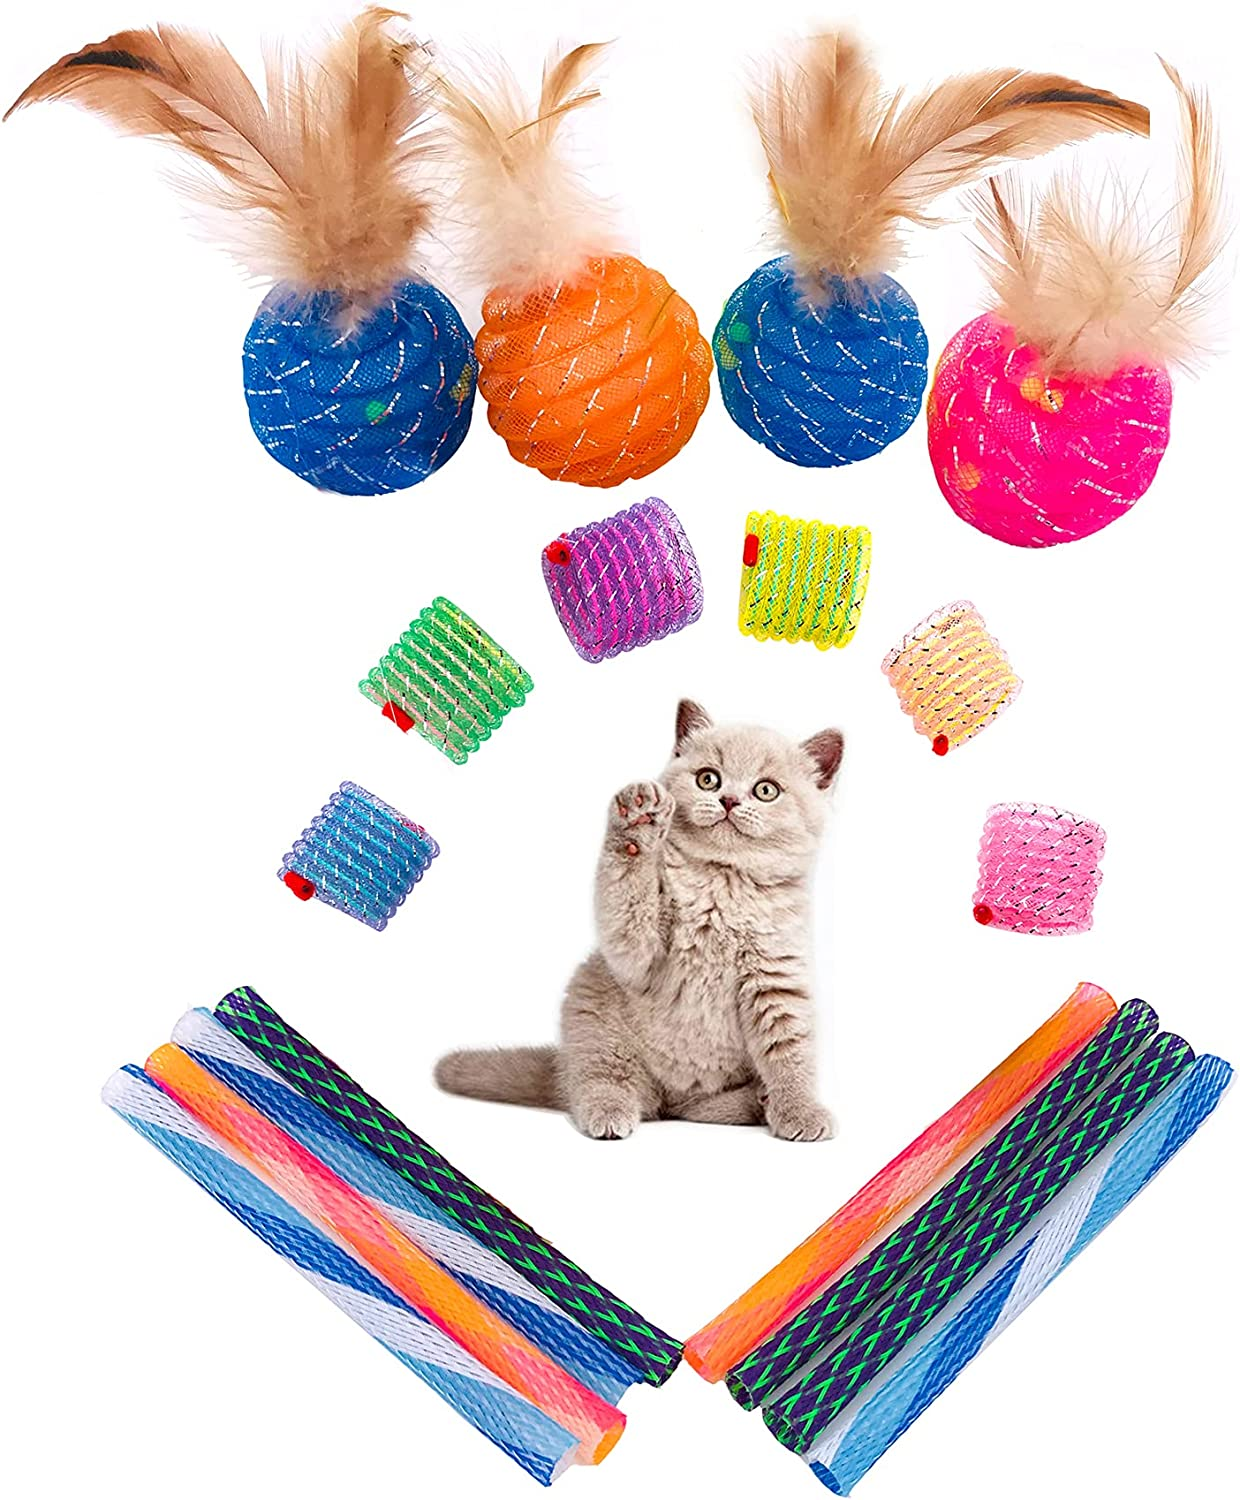 JpGdn Tulsa Mall Cat Spring Toy Kitten Ball Max 74% OFF with Coil Feather Tube o